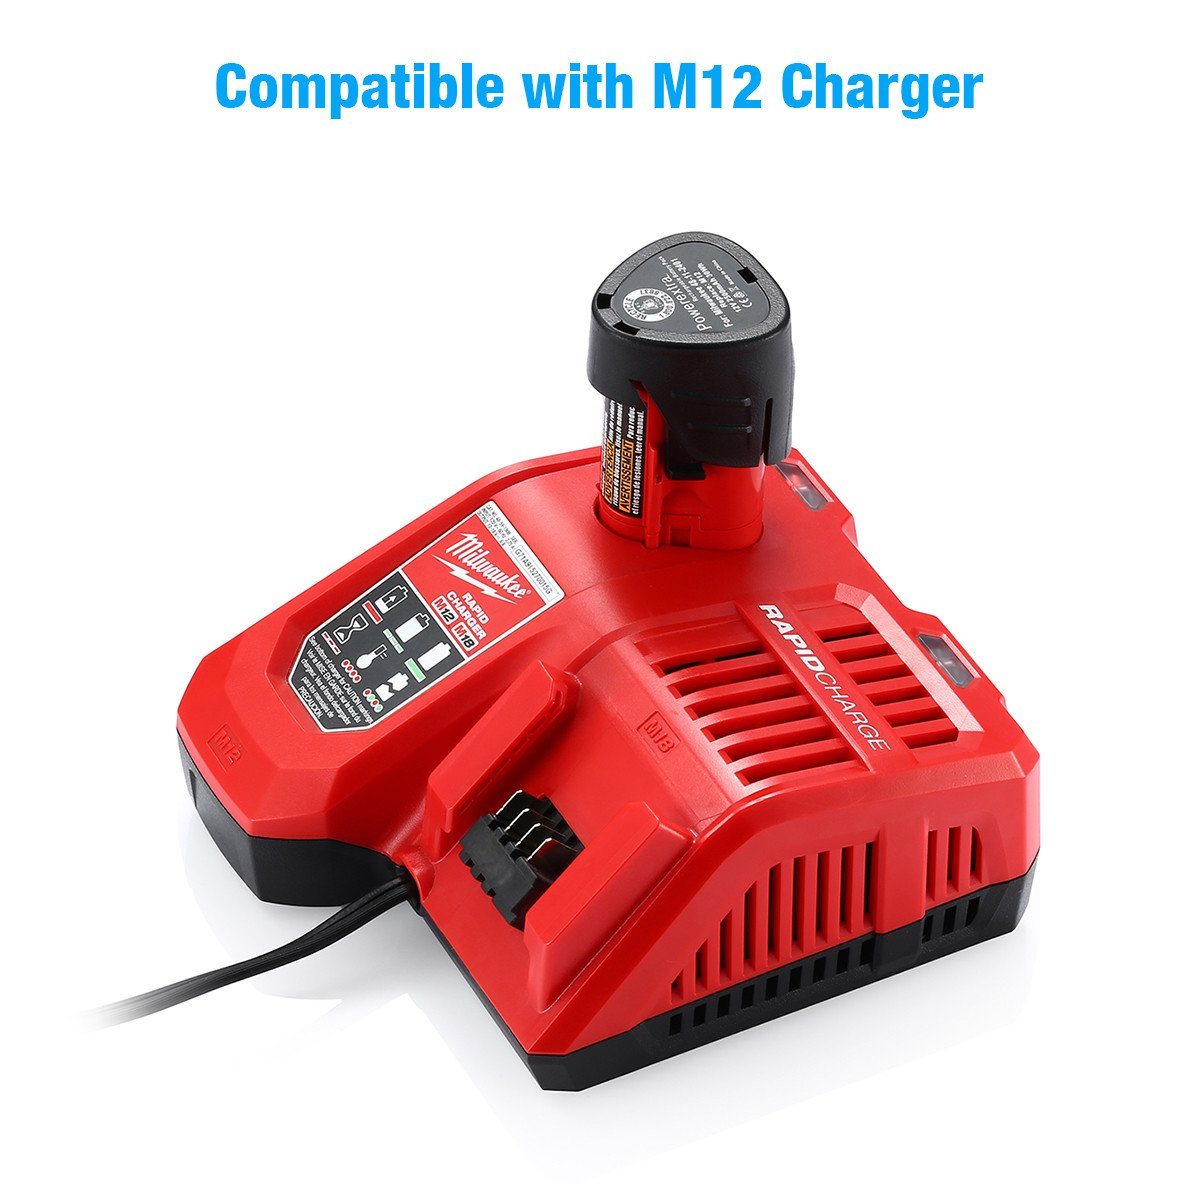 Powerextra 2 Pack 12V 2500mAh Lithium-ion Replacement Battery Compatible with Milwaukee M12 Milwaukee 48-11-2411 REDLITHIUM 12-Volt Cordless Milwaukee Tools Milwaukee 12V Battery Lithium-ion by Powerextra (Image #6)